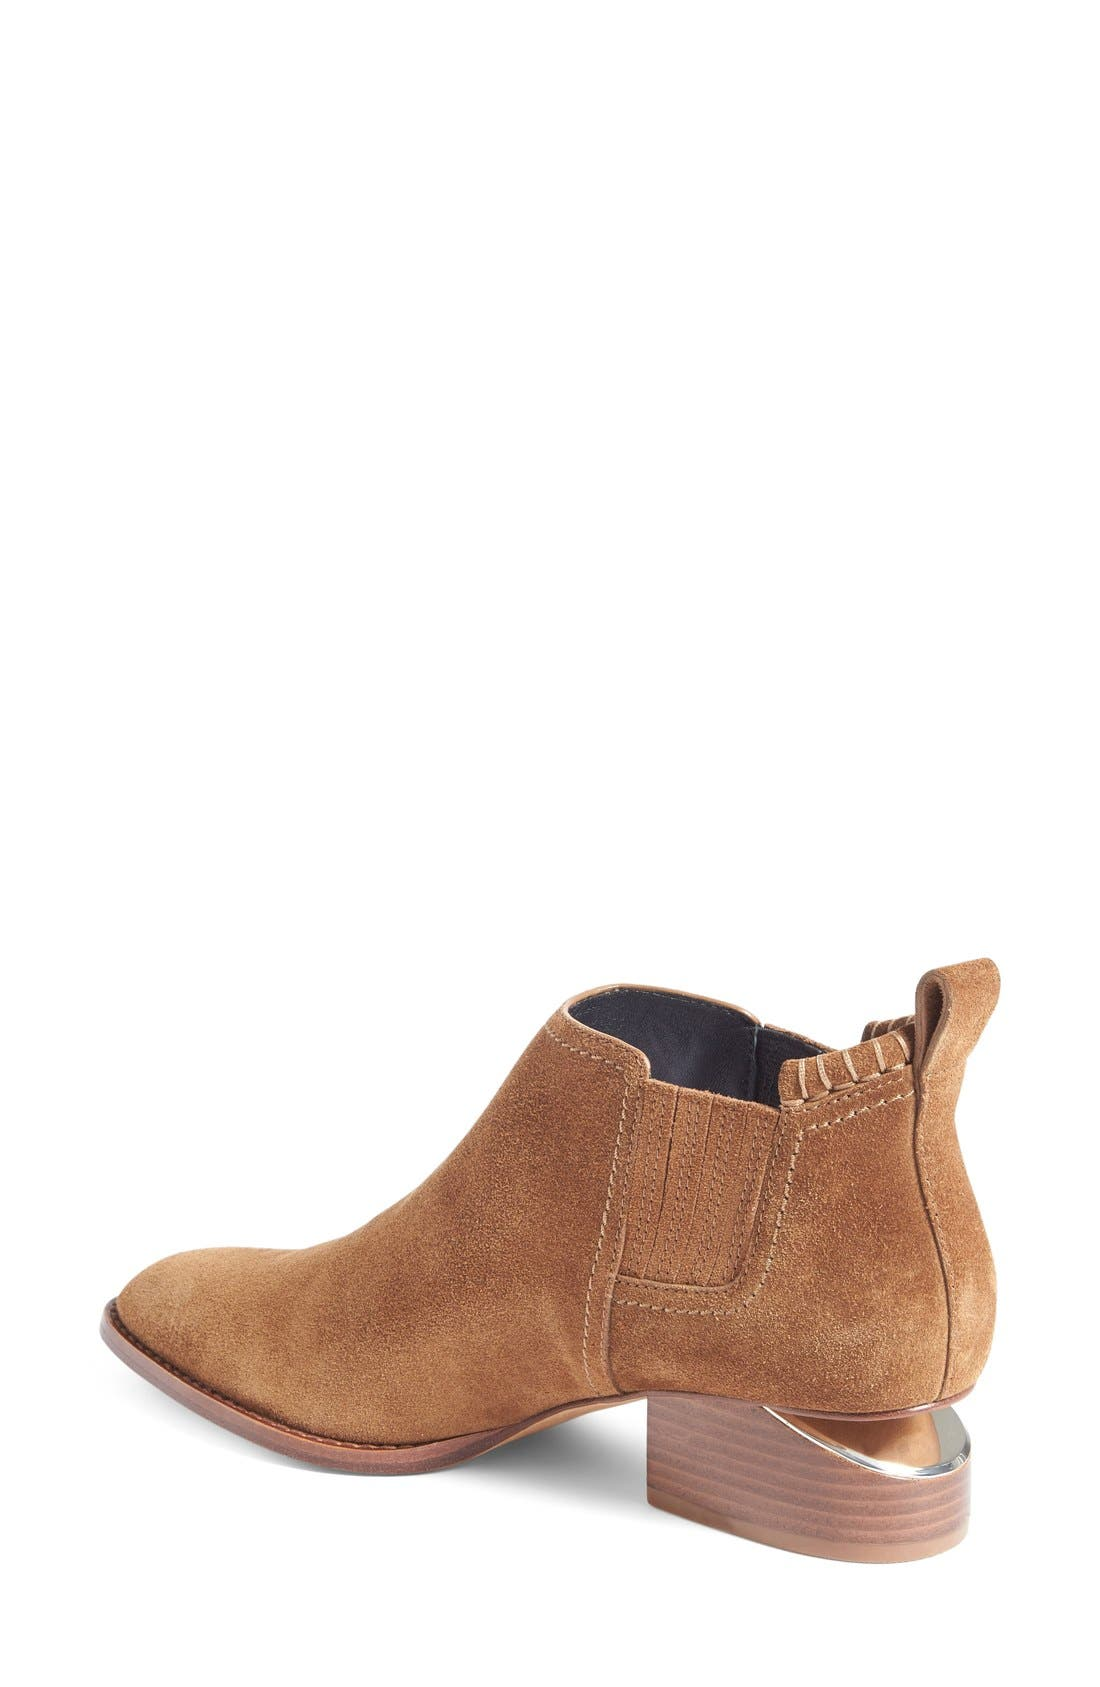 Kori Chelsea Boot,                             Alternate thumbnail 2, color,                             Dark Truffle